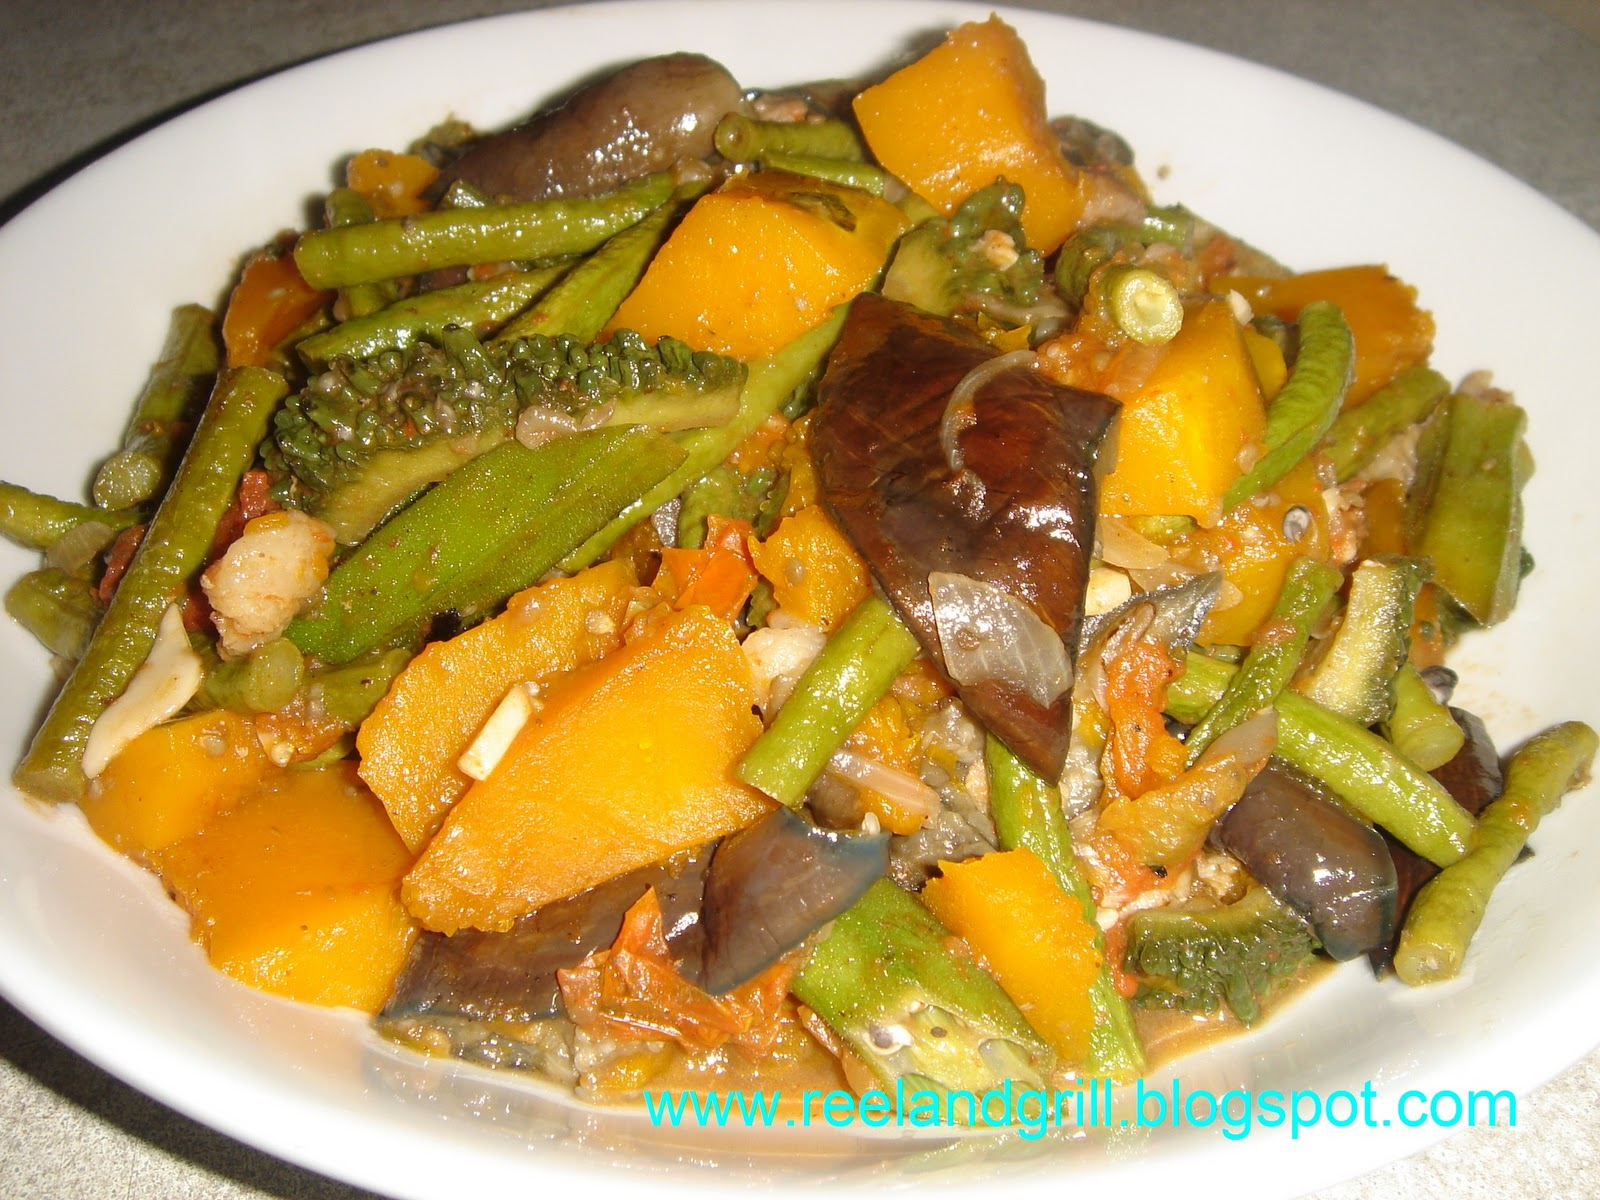 how to cook sayote with giniling